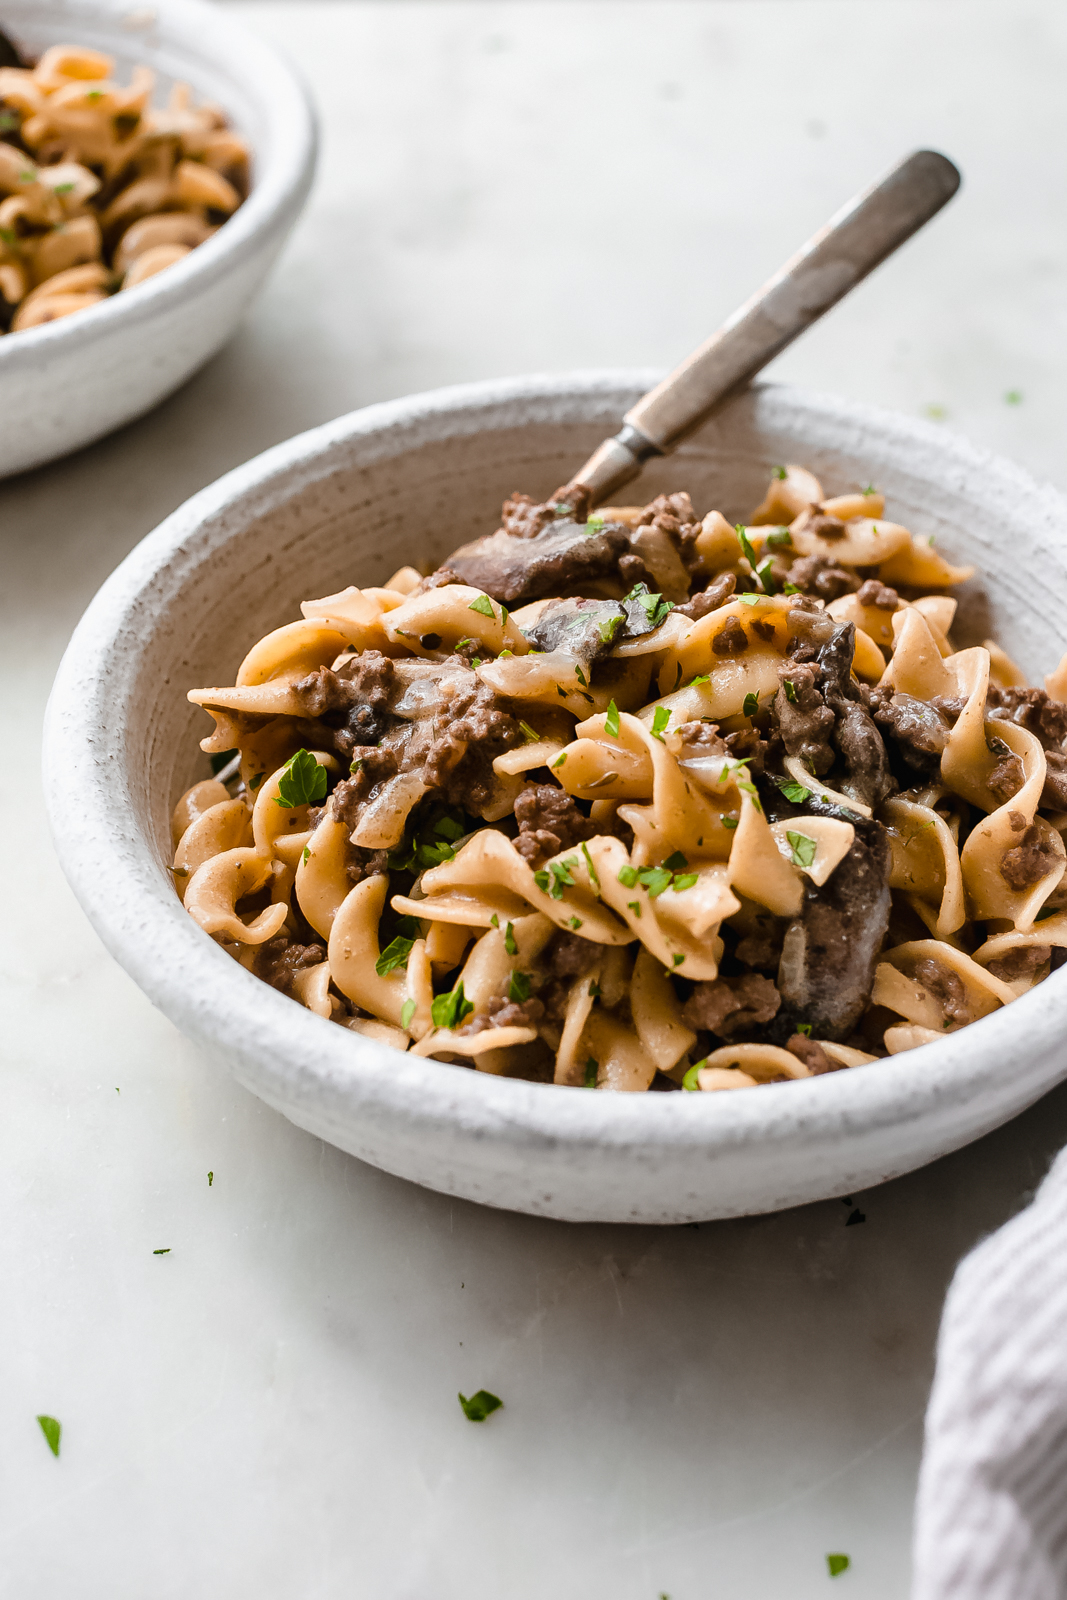 egg noodles with ground beef in a white bowl on white marble